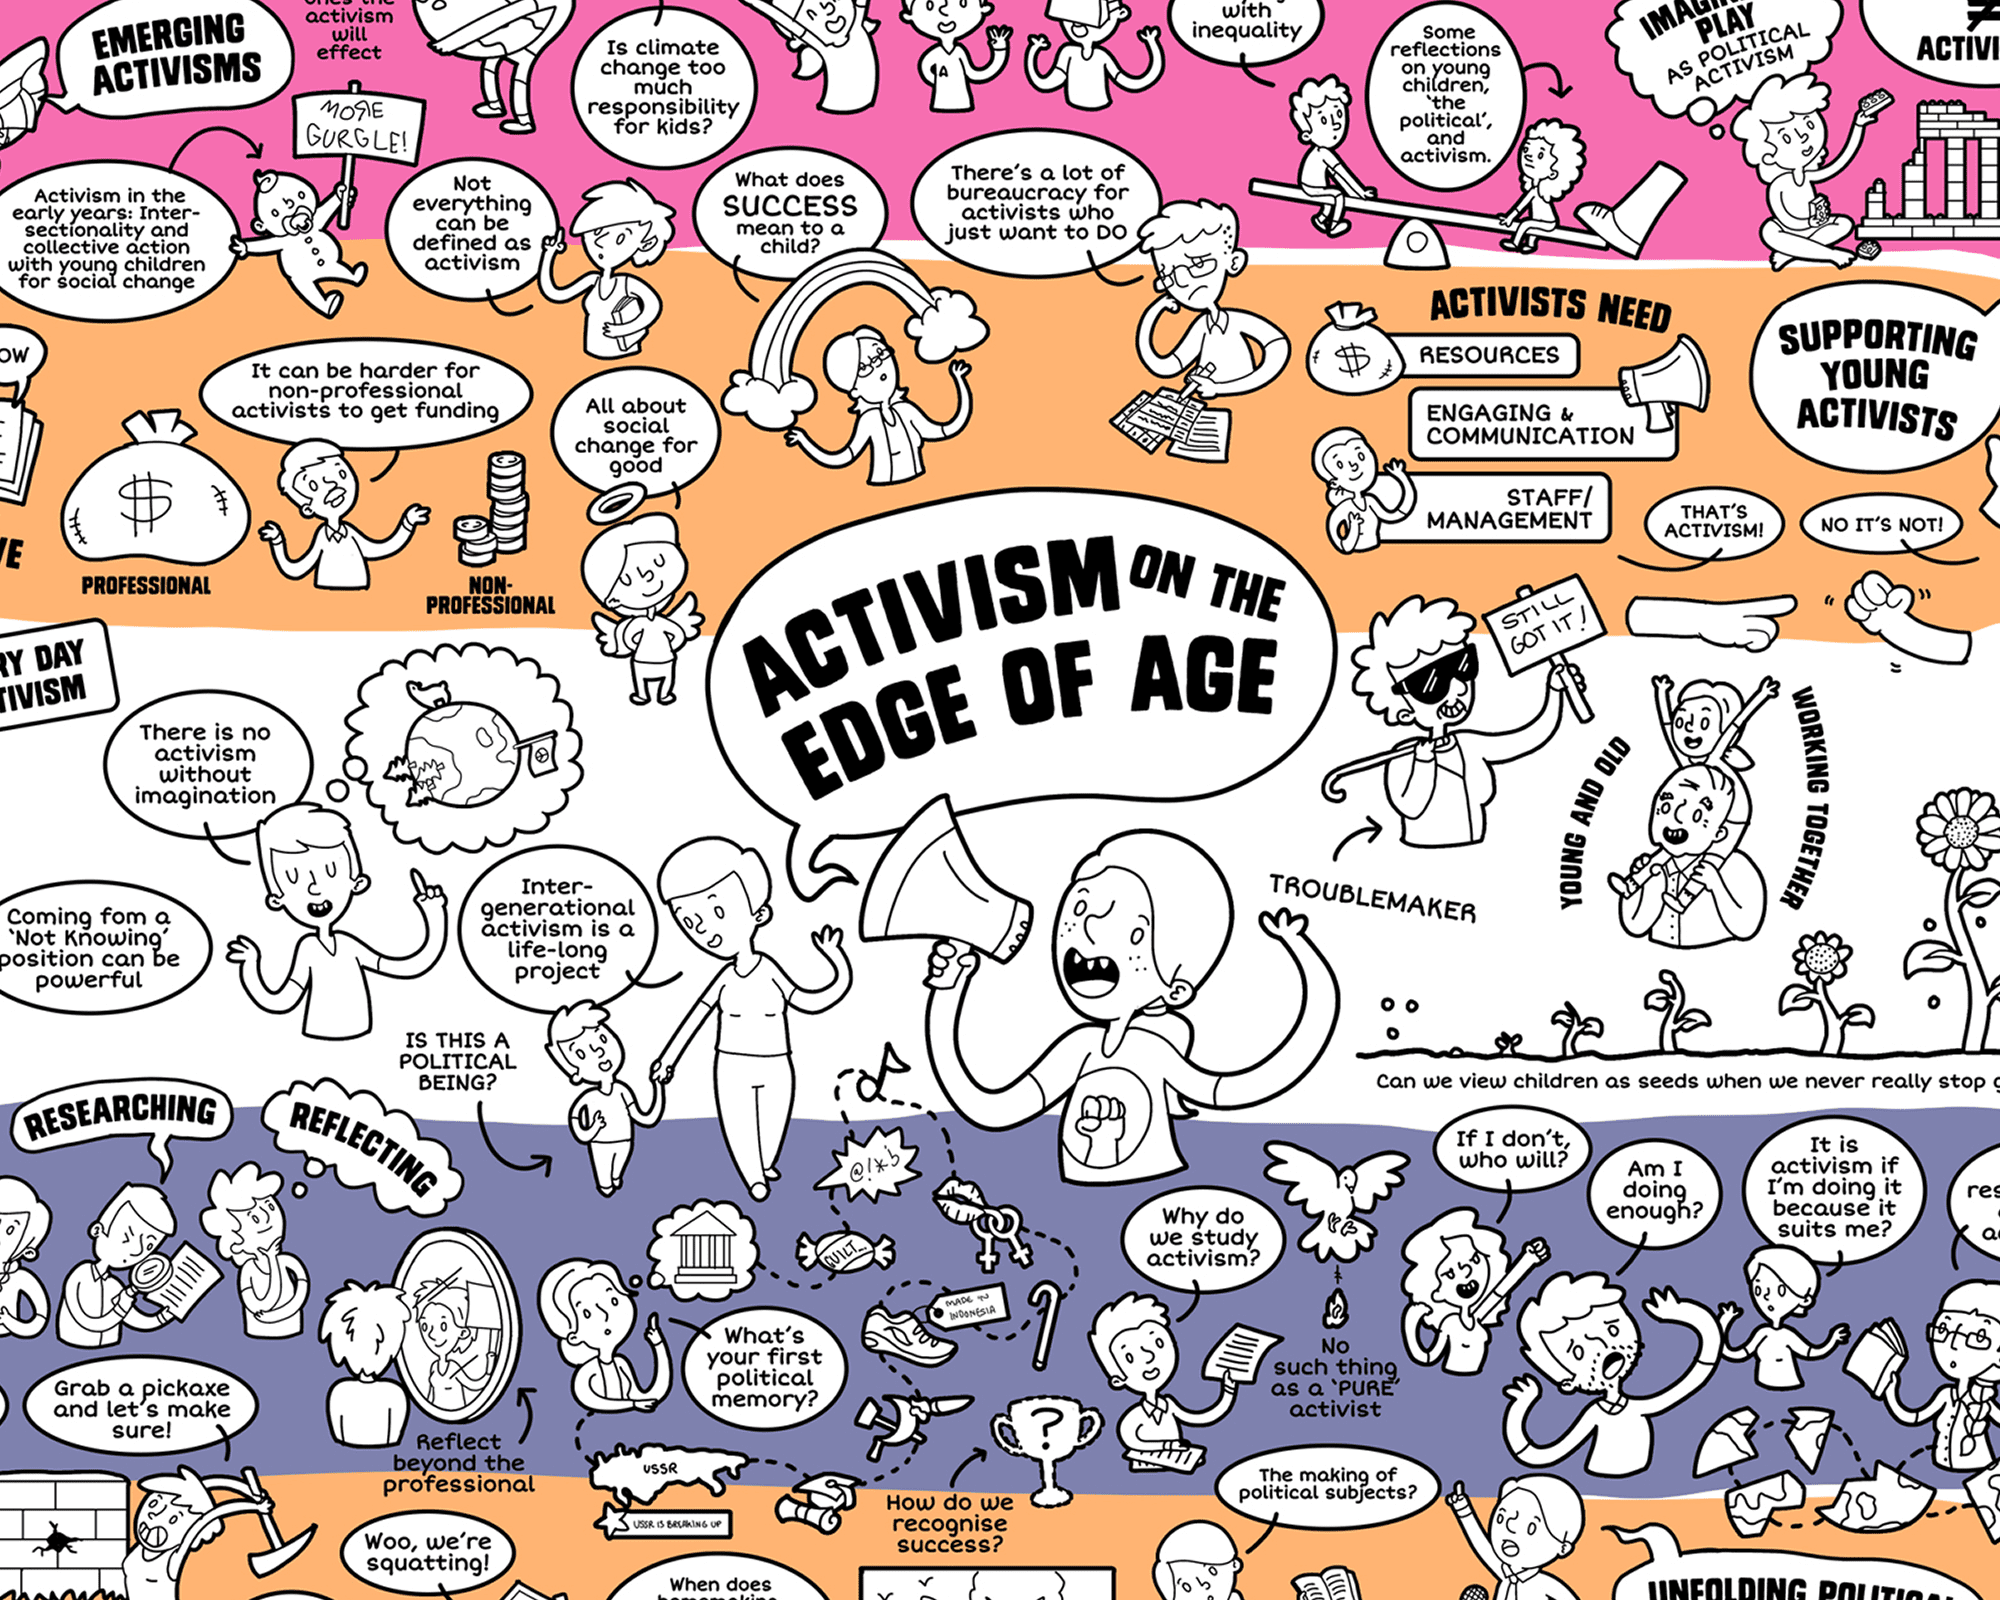 Activism on the edge of age sketchnotes featured